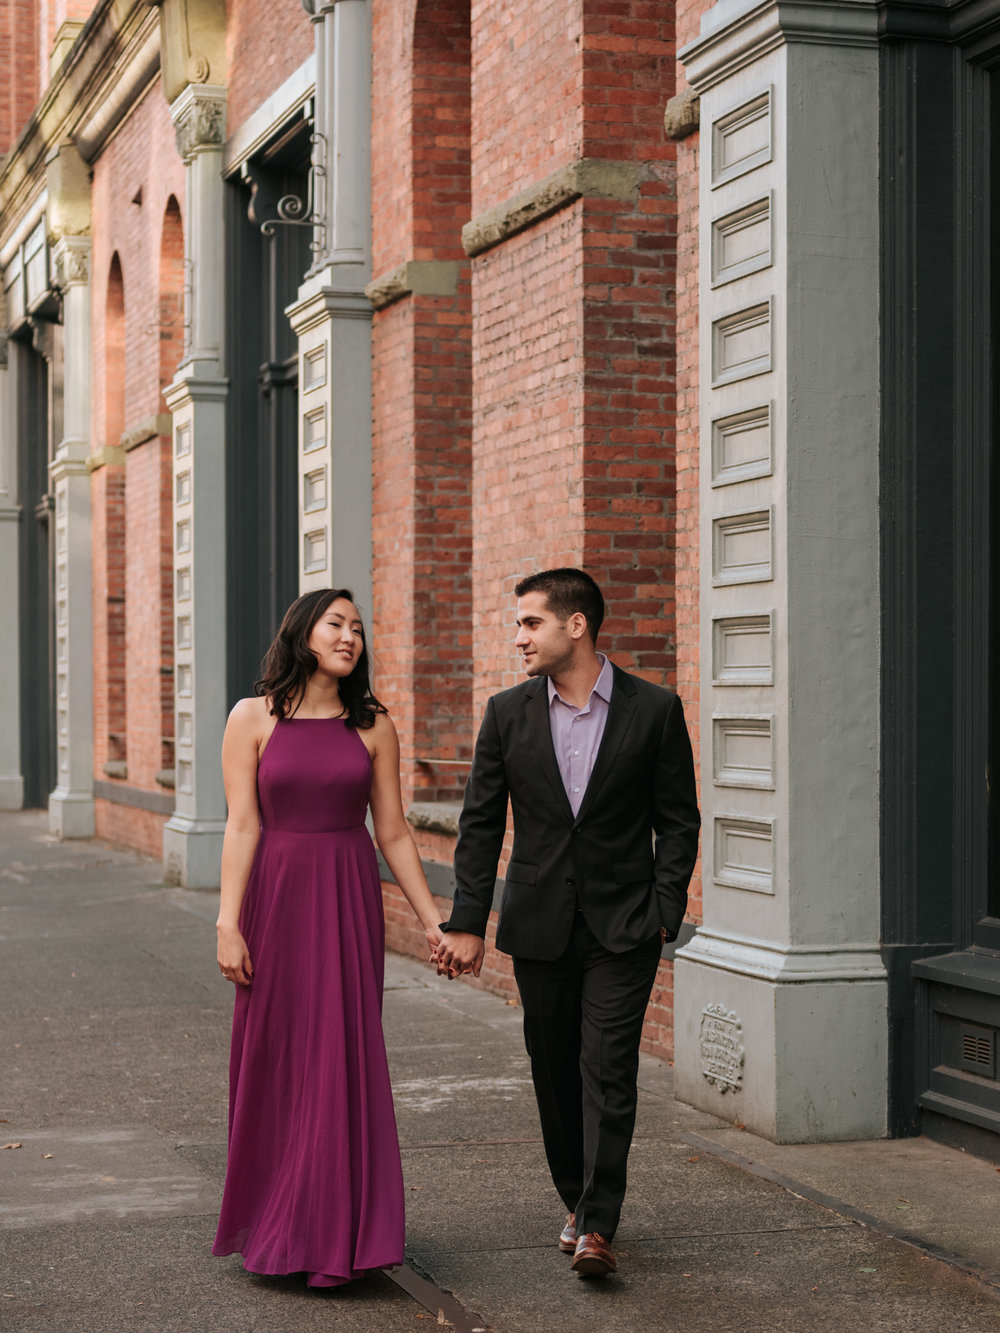 Seattle Engagement Photographer_Stolen Glimpses 19.jpg